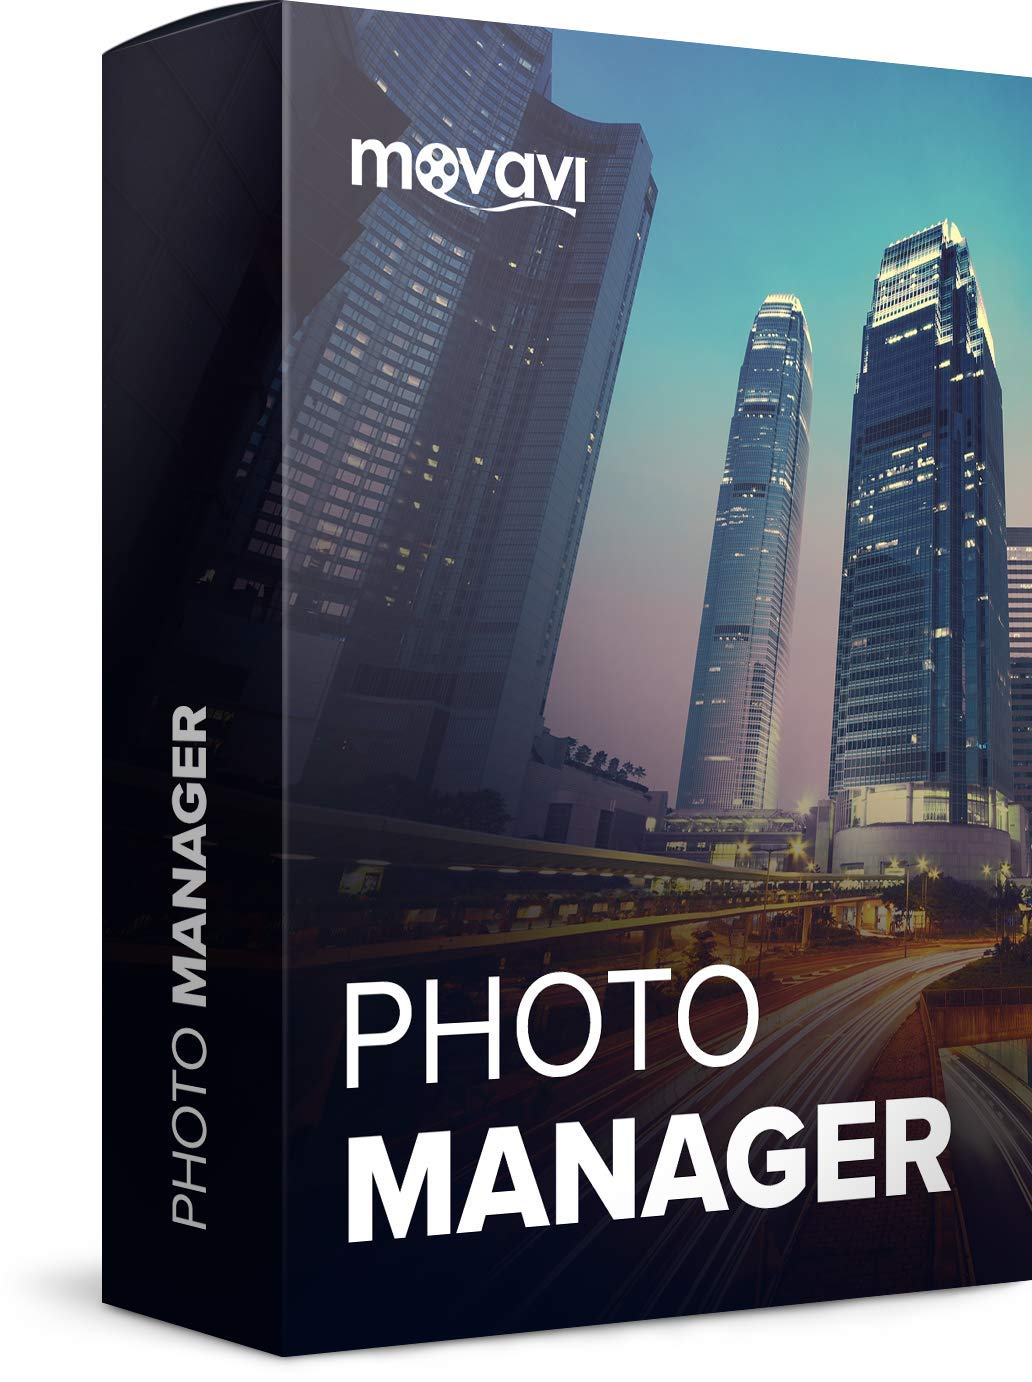 Movavi Photo Manager Business [PC Download] by Movavi Software Inc